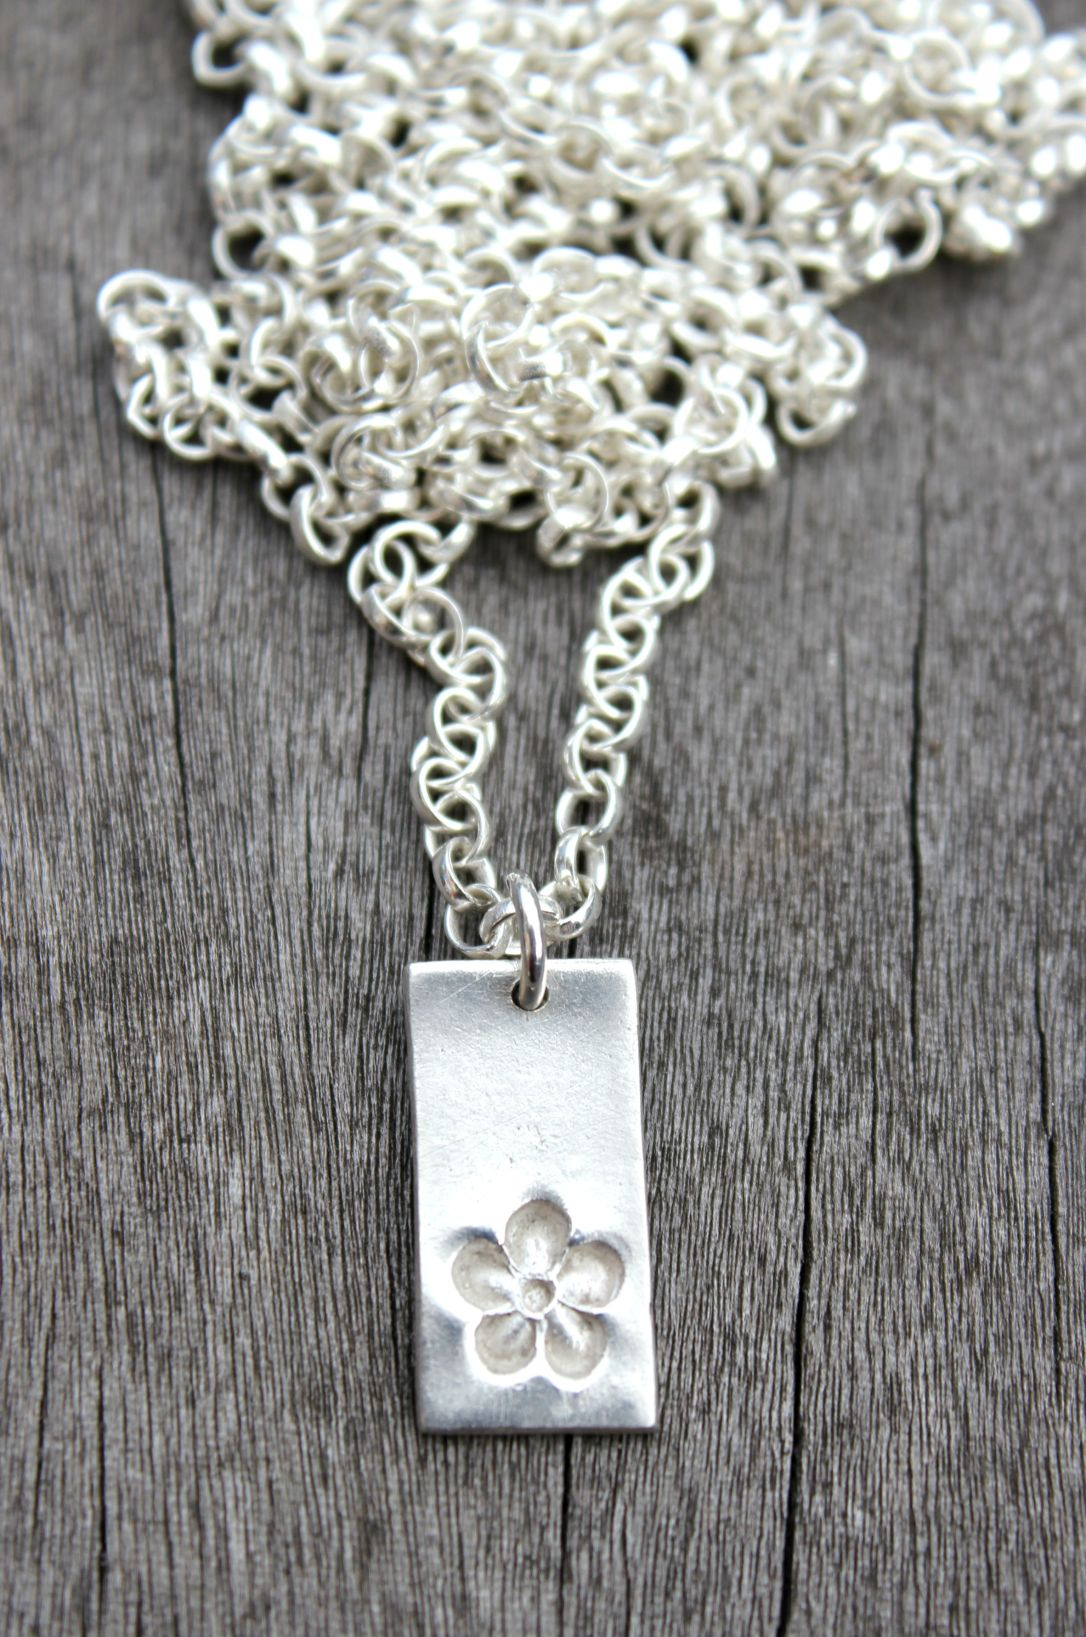 Silver flower pendant by little silver hedgehog.JPG